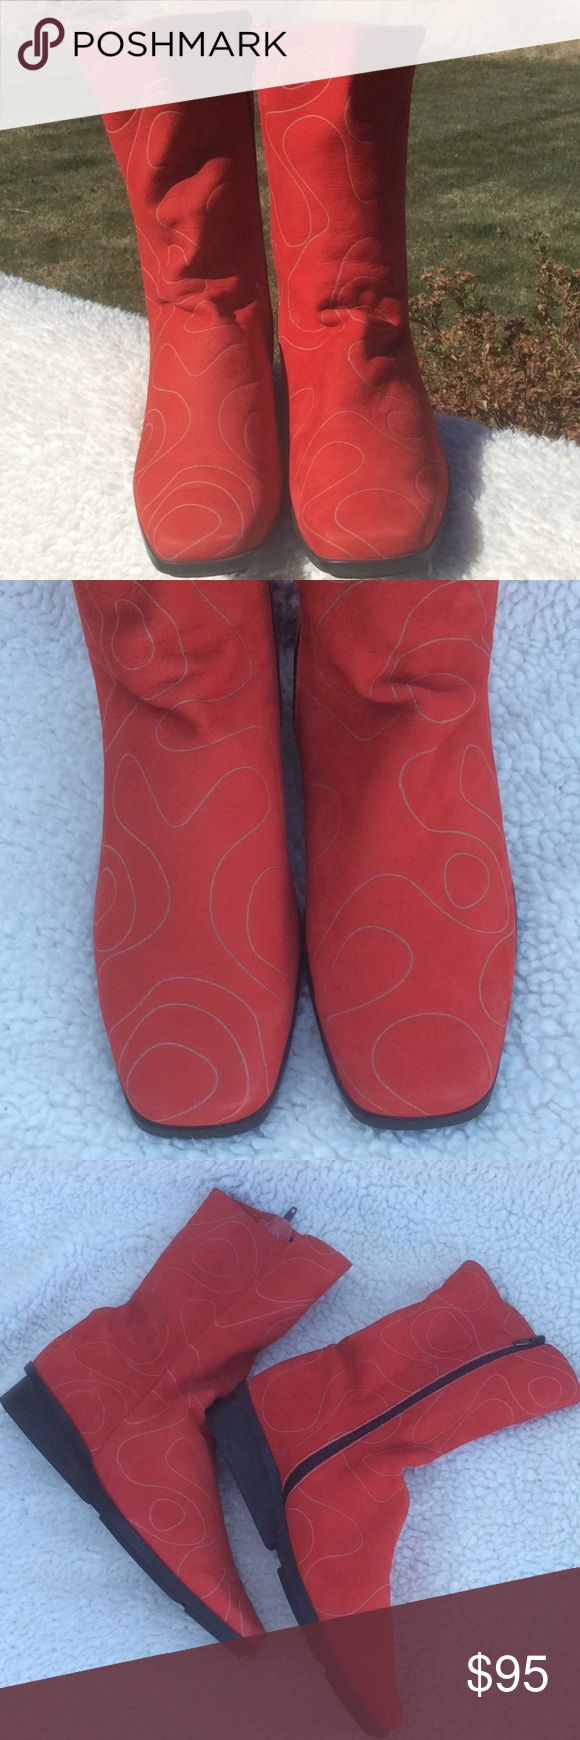 France Suede Foot Diffusion